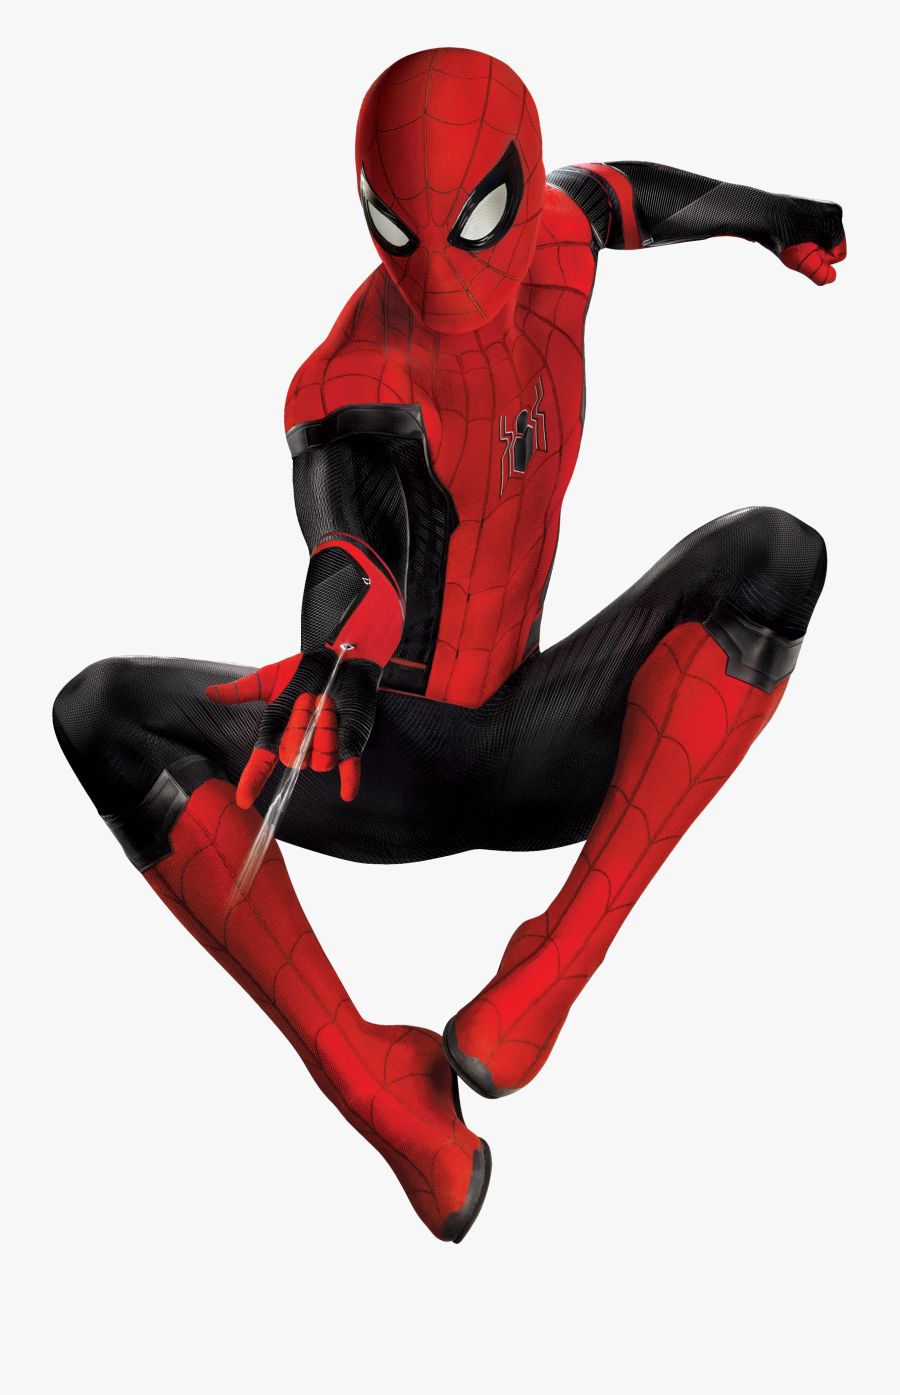 Spider-man Far From Home Png Free Download - Spider Man Upgraded Suit, Transparent Clipart